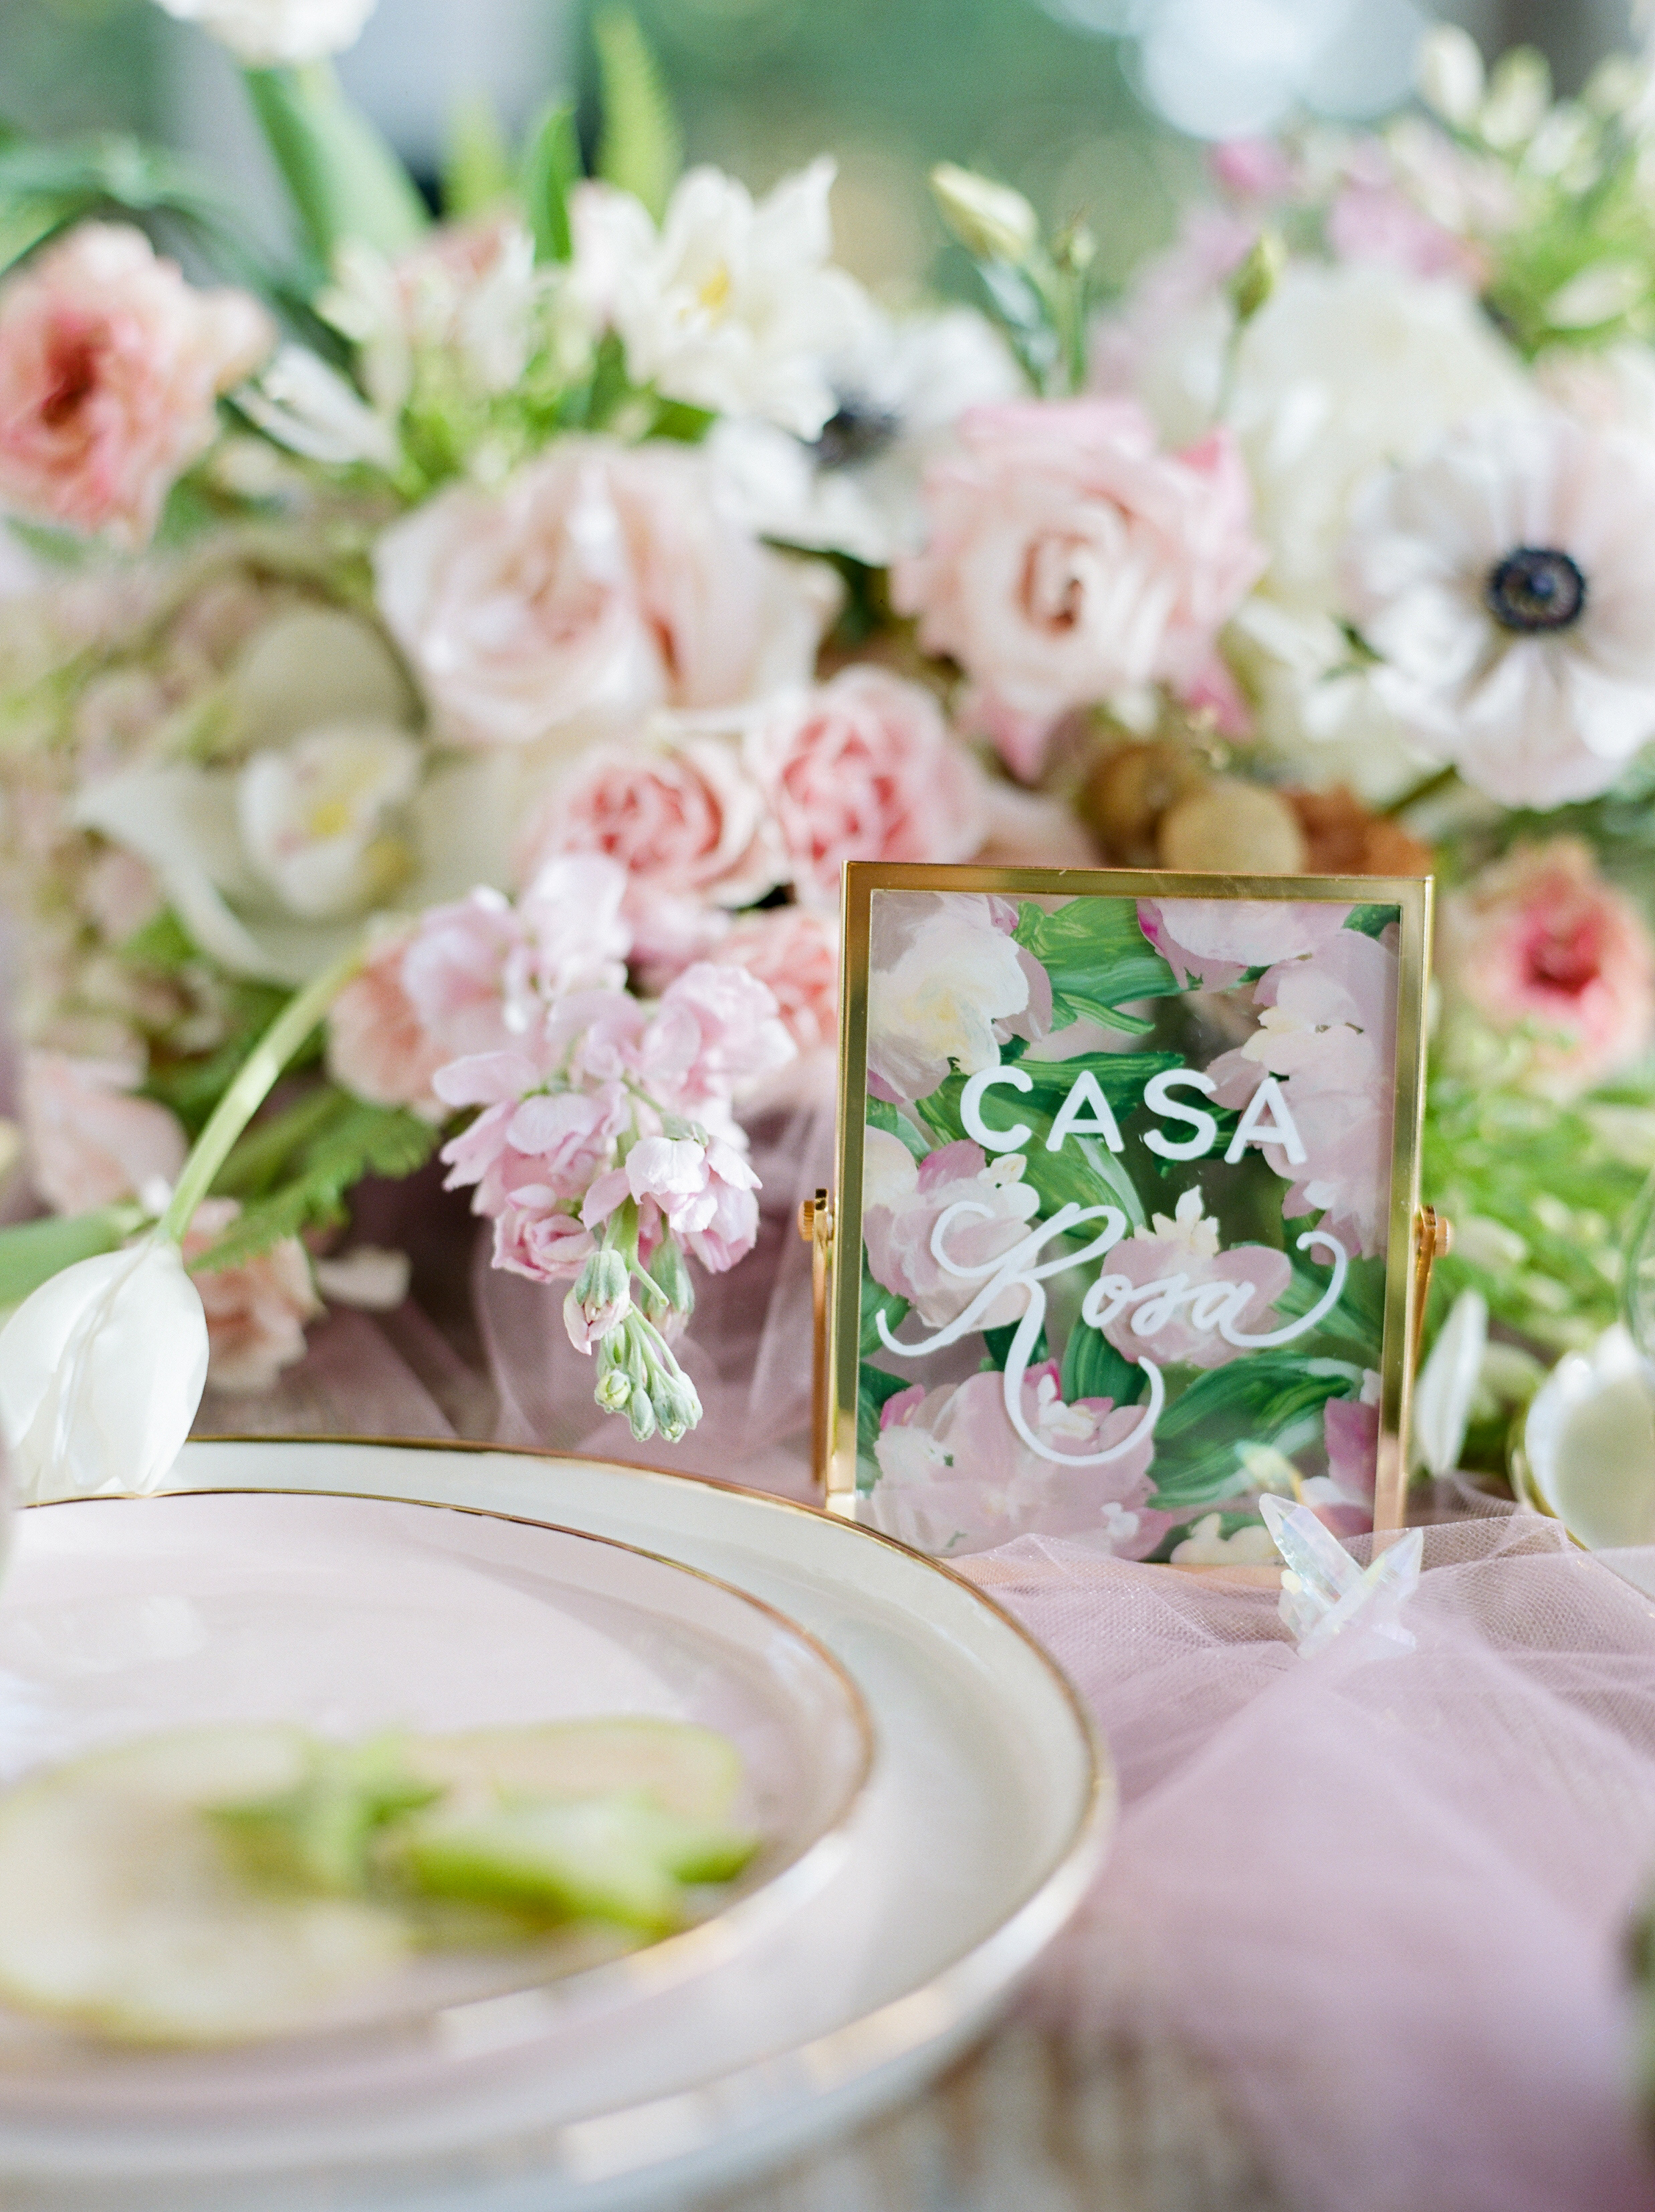 Casa Rosa Floral Styled Shoot - Concept + Florals: MibellarosaPhotography: Josh & Dana Fernandez PhotographyVenue: The DunlavyPaper + Calligraphy: Half Moon LetteringView the full shoot on Brides of Houston